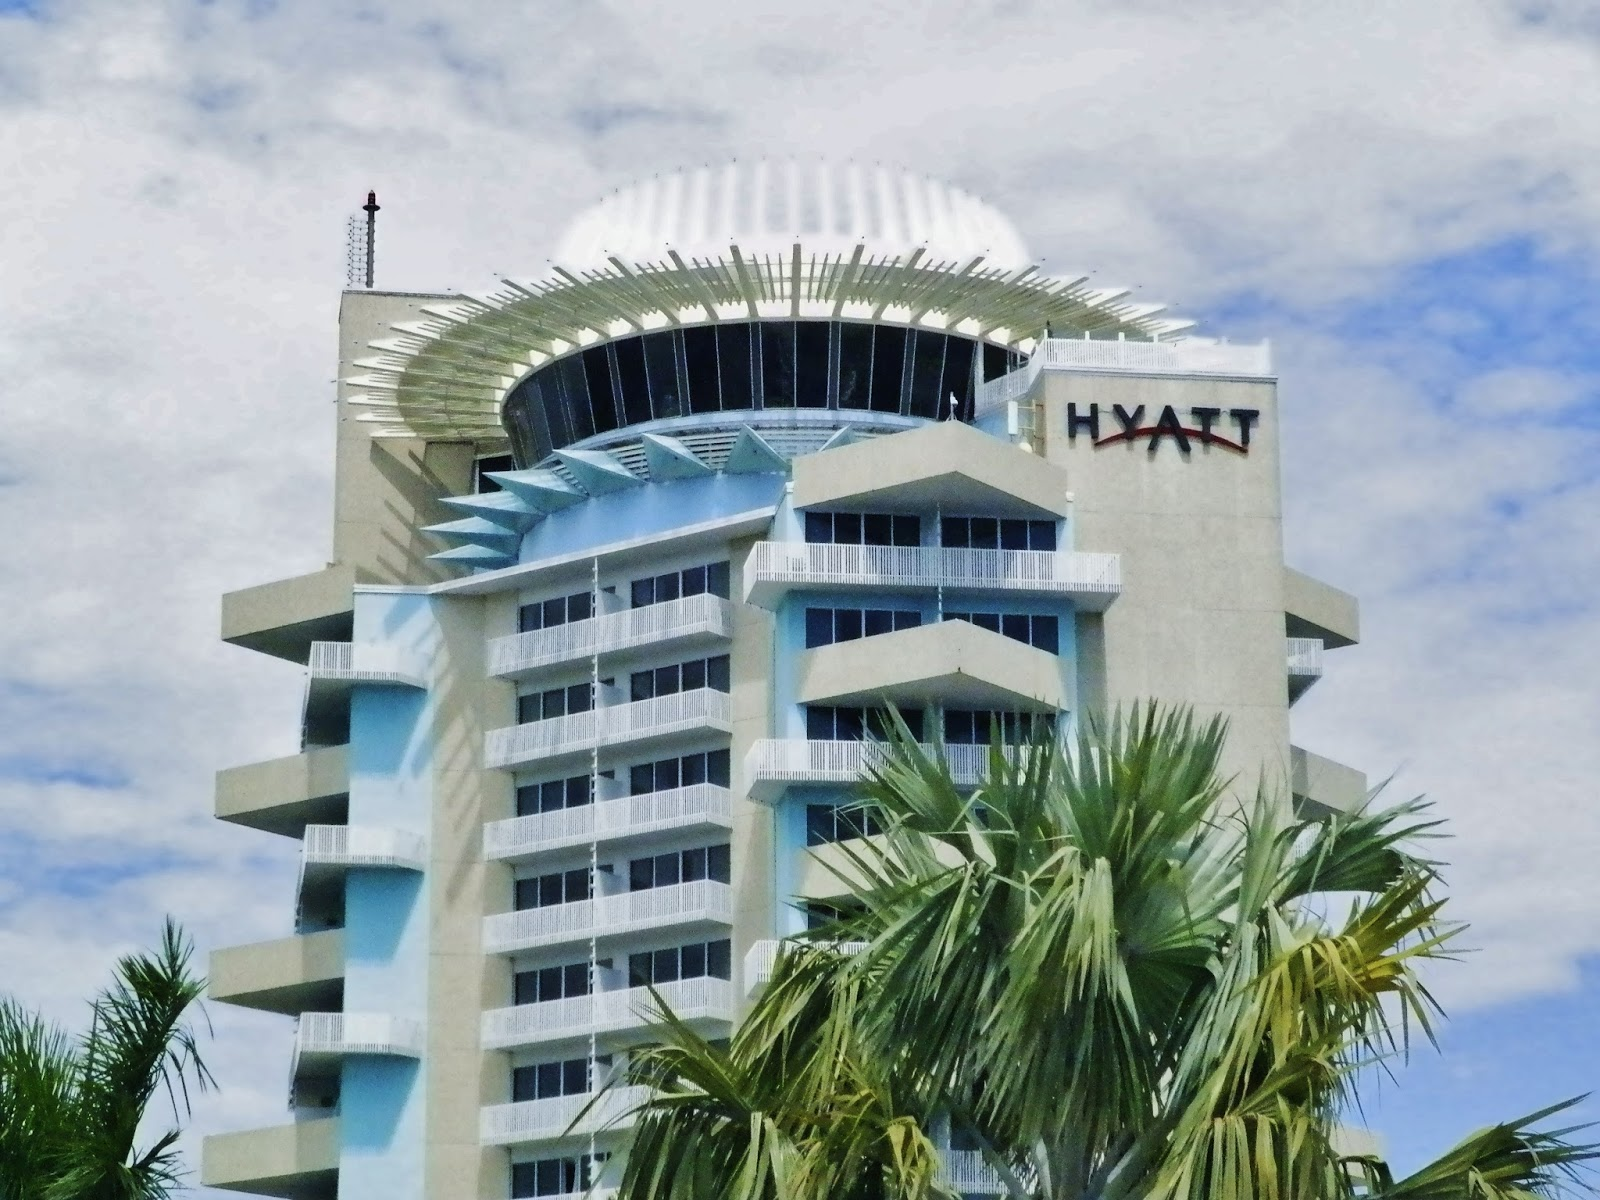 Hyatt Regency Pier 66 Fort Lauderdale Florida